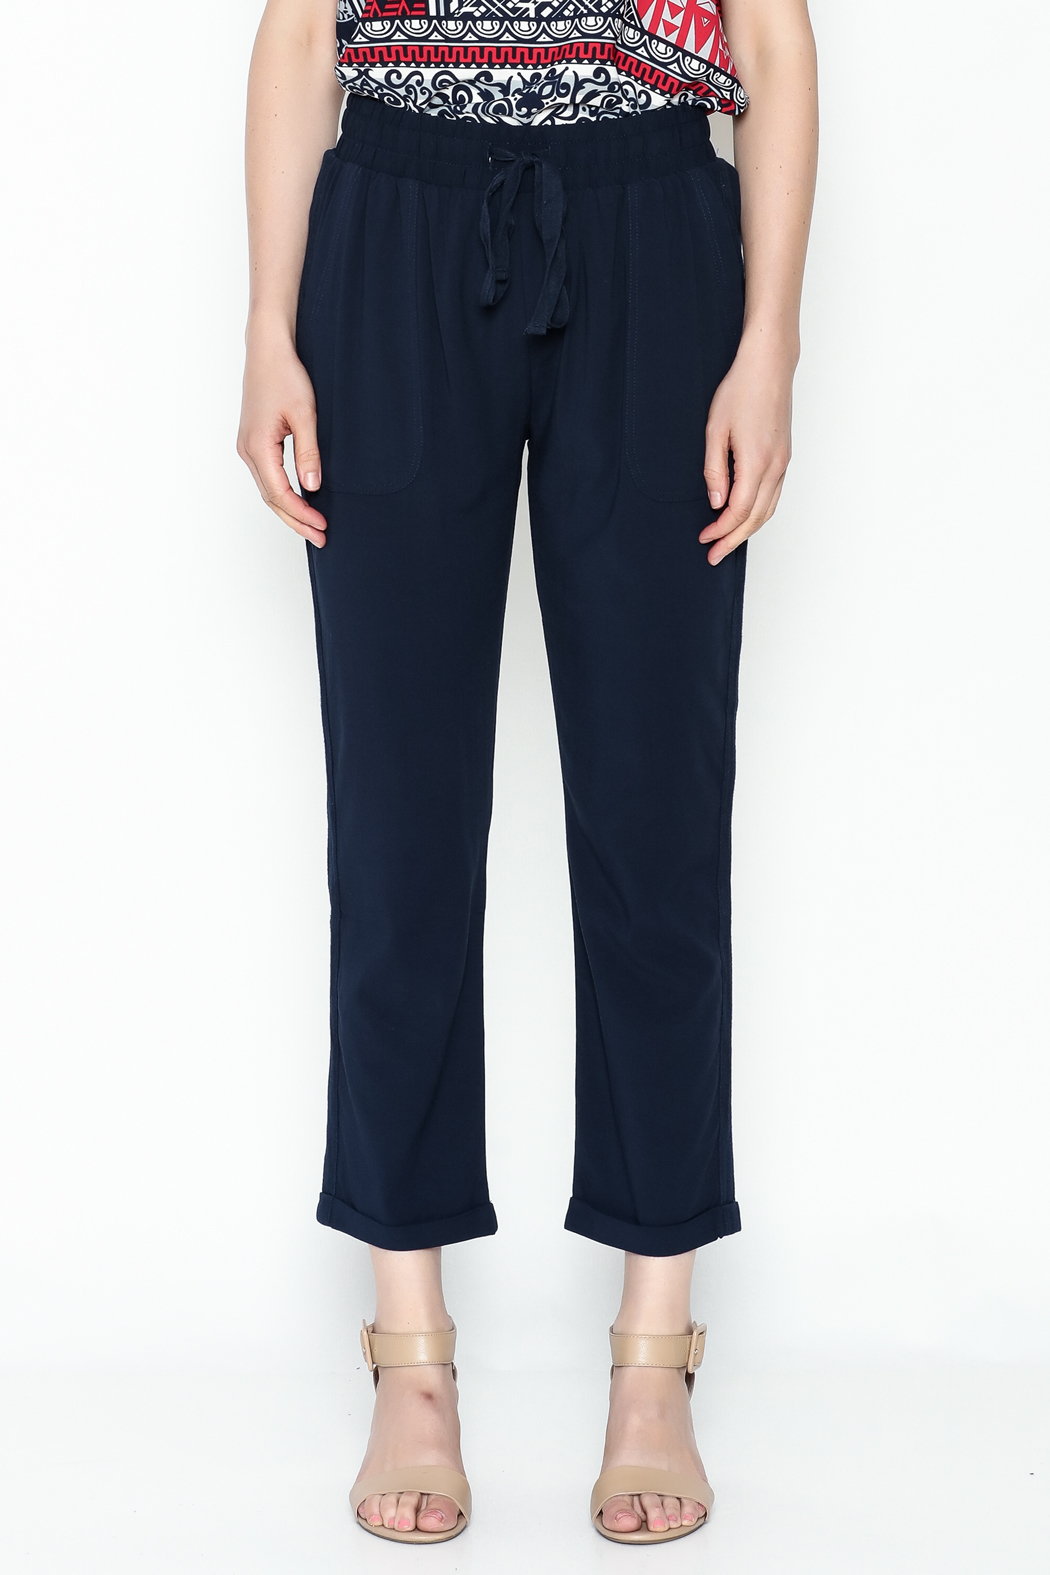 Umgee USA Waist Tie Pant - Front Full Image